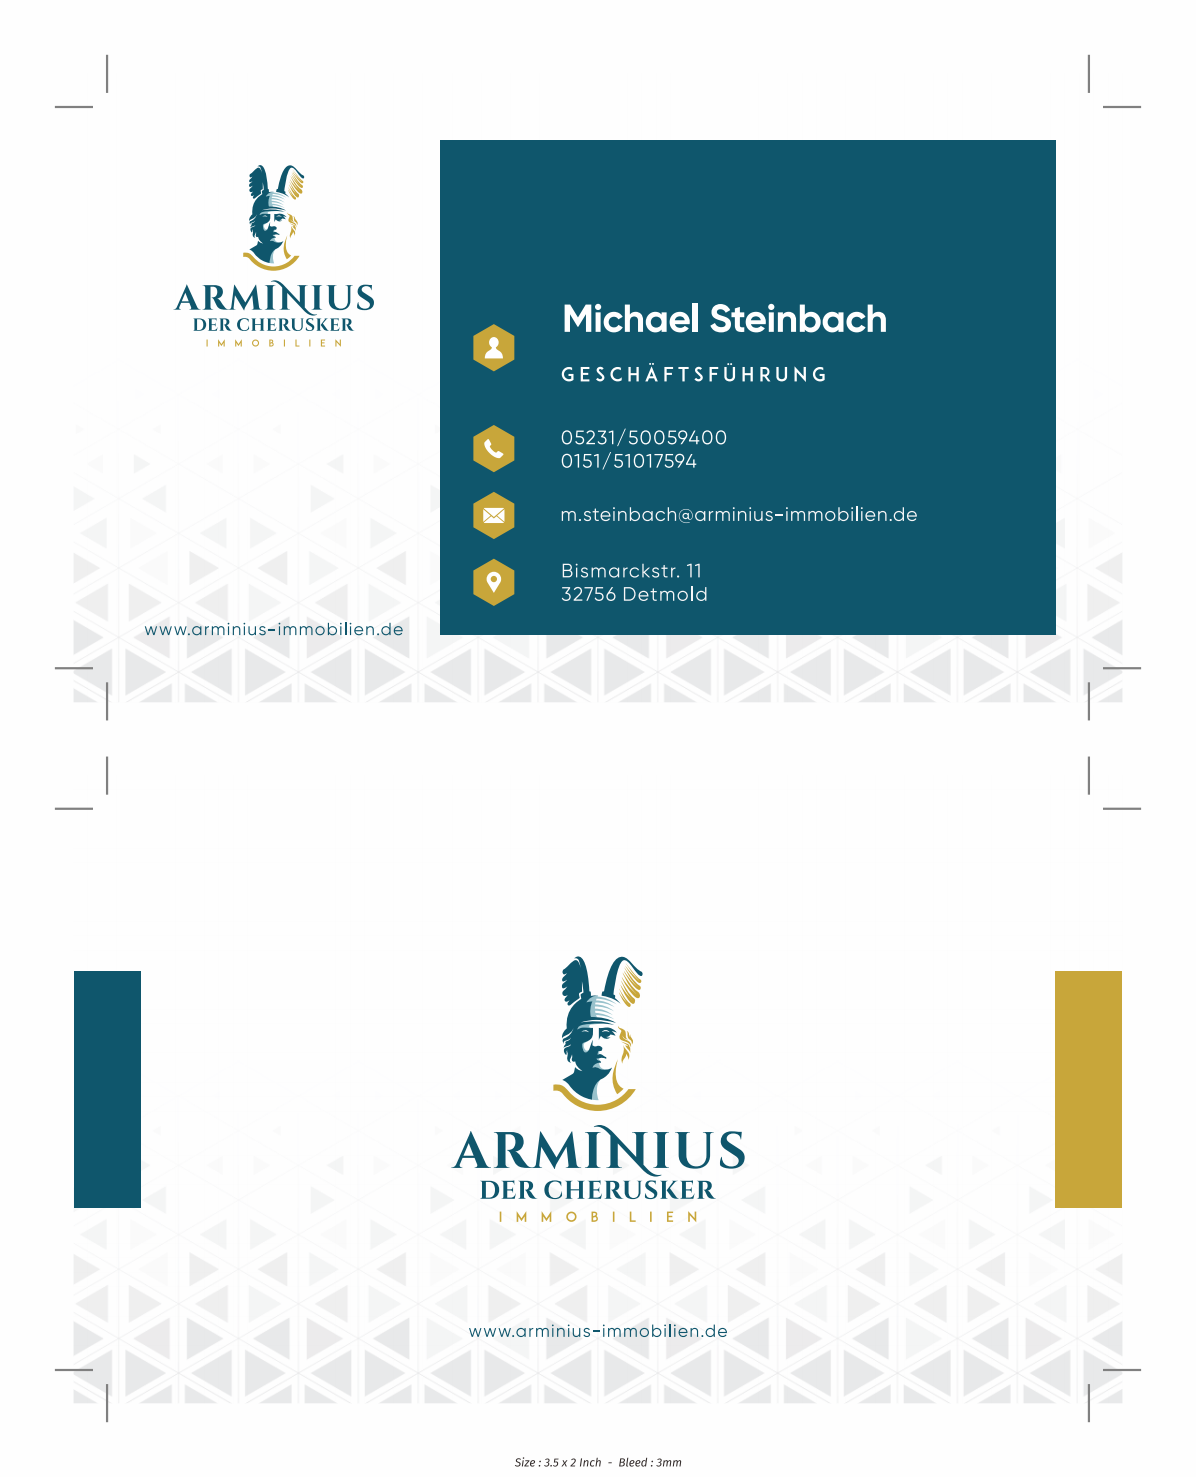 small logo change an business cards